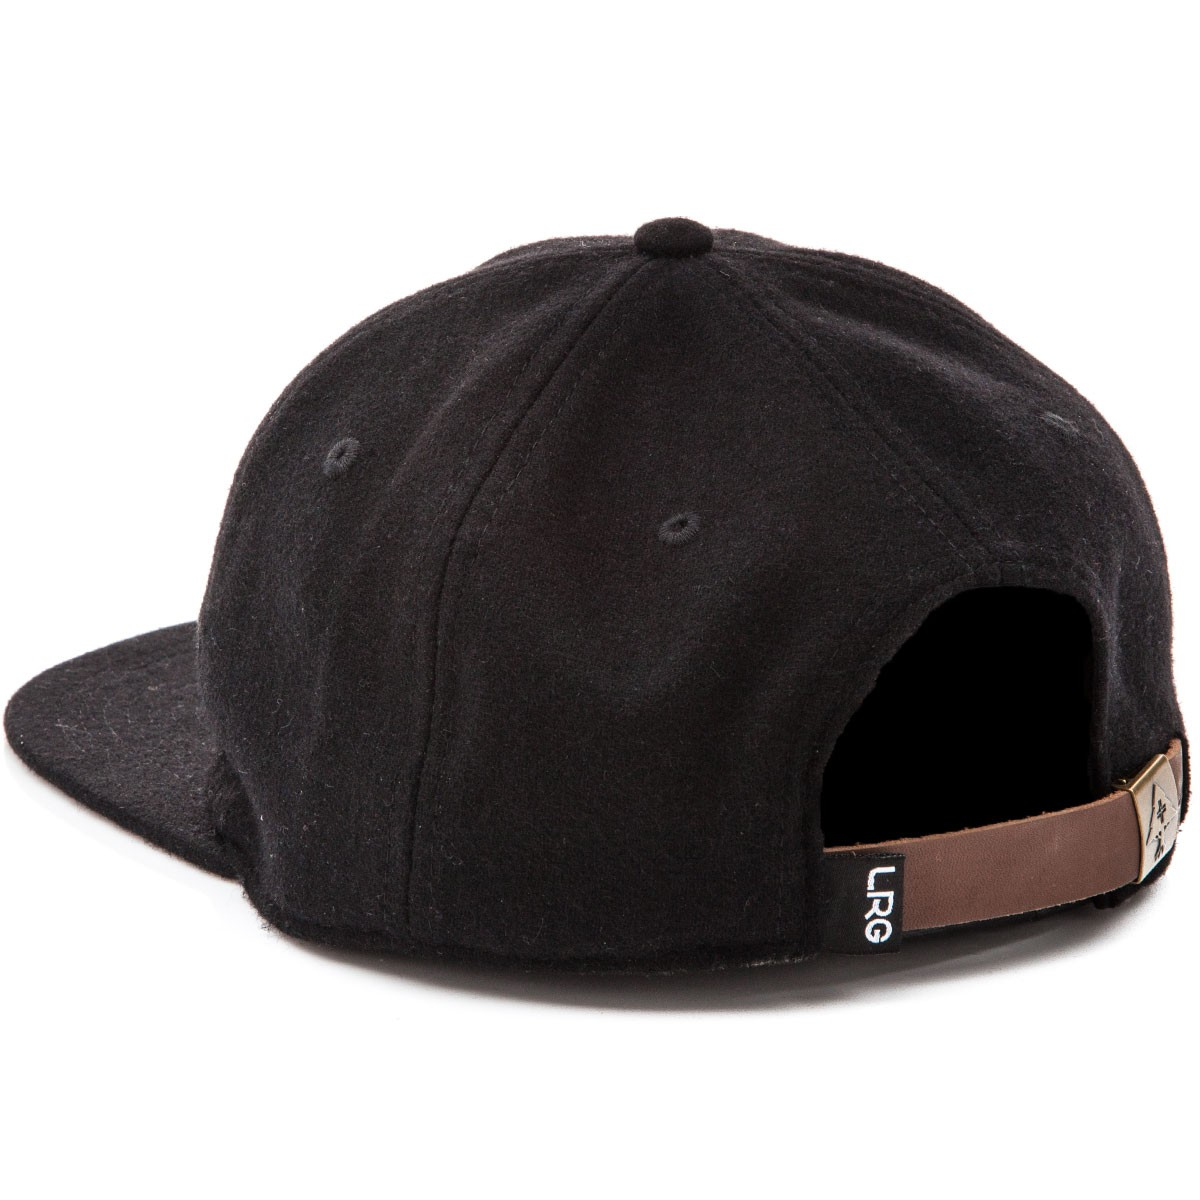 LRG Blank Check Strap Back Hat - Black 07da168a727